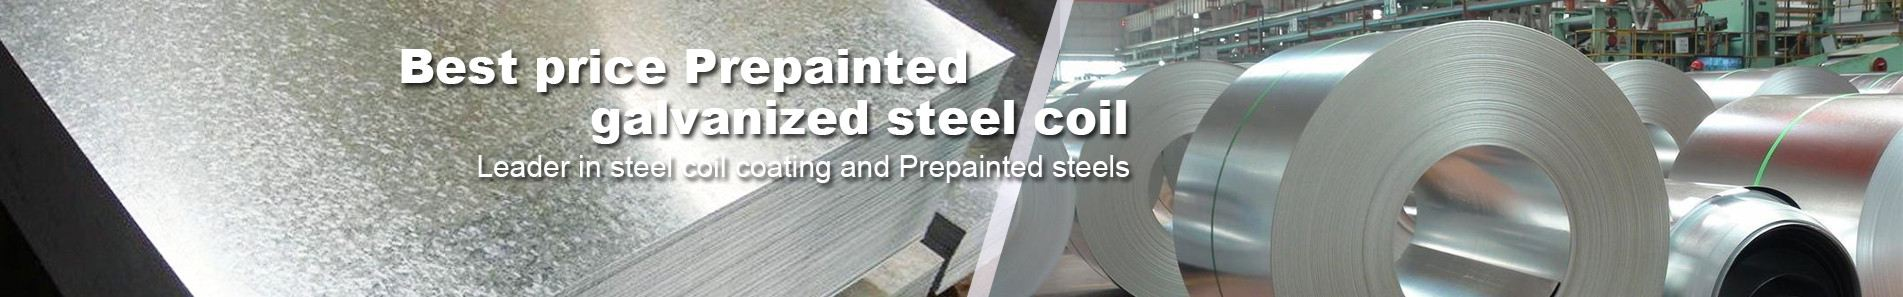 galvanized-steel-coil